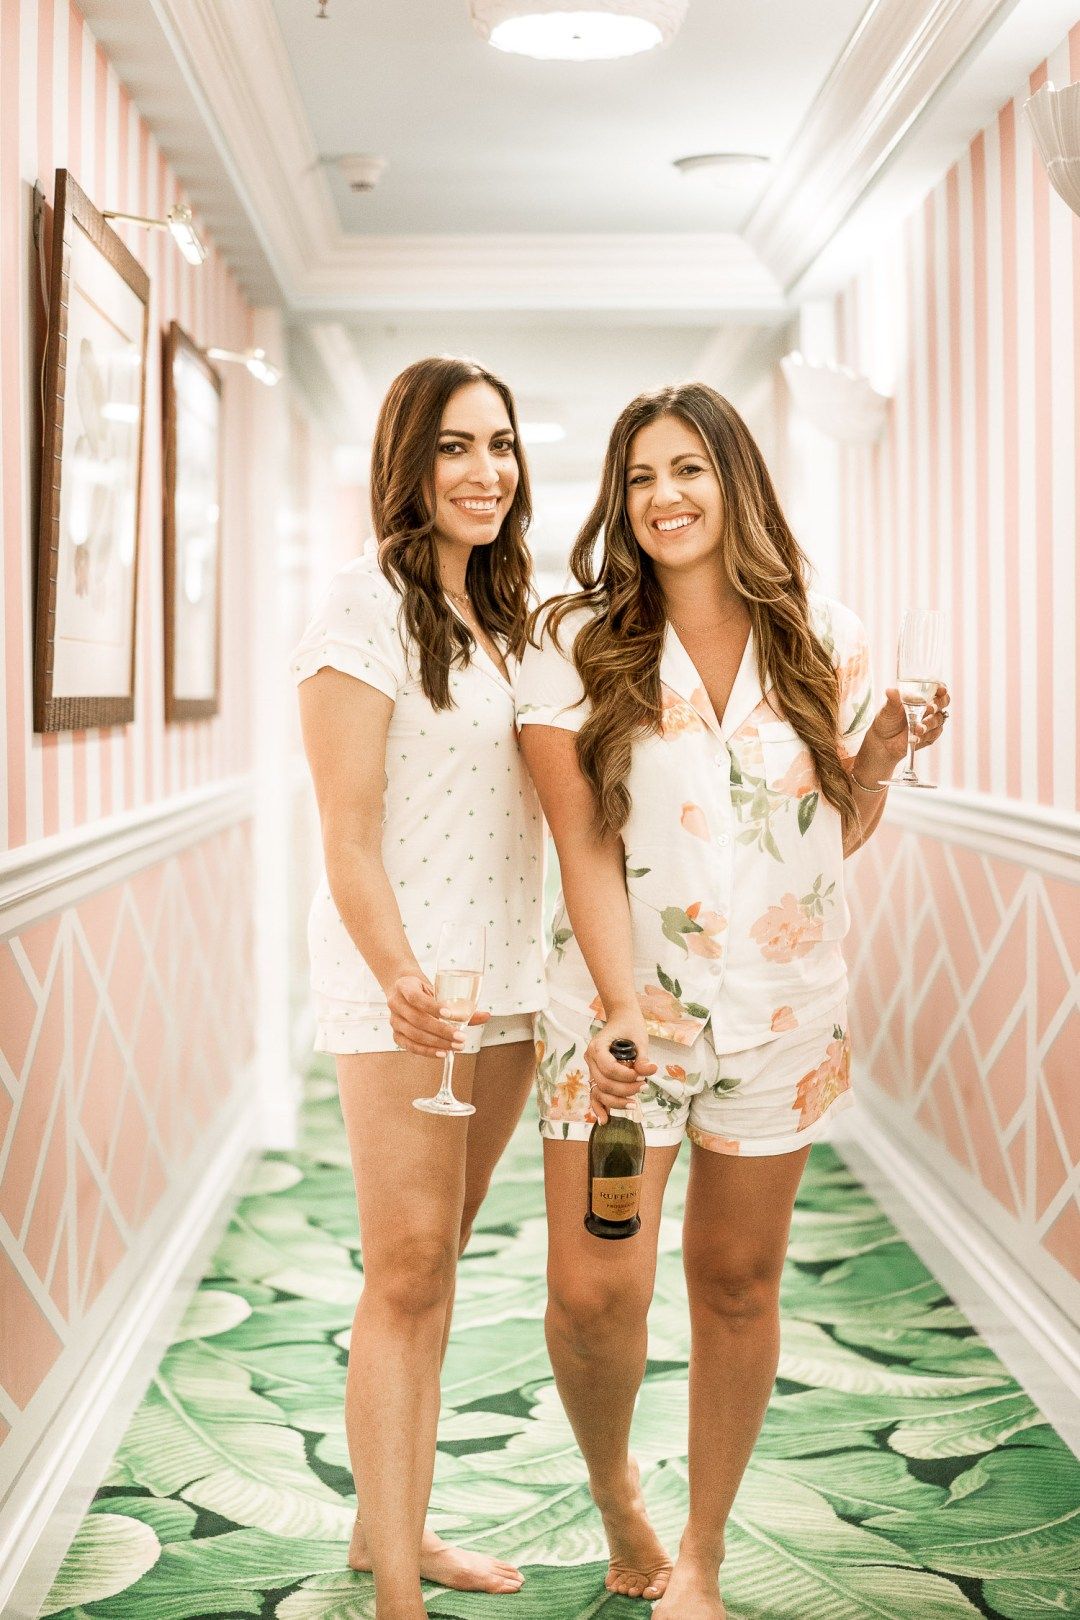 the-colony-palm-beach-hotel-review-eberjey-palm-print-pajamas-jaime-sunflowers-stilettos-aglamlifestyle-south-florida-blogger-girls-weekend-trip